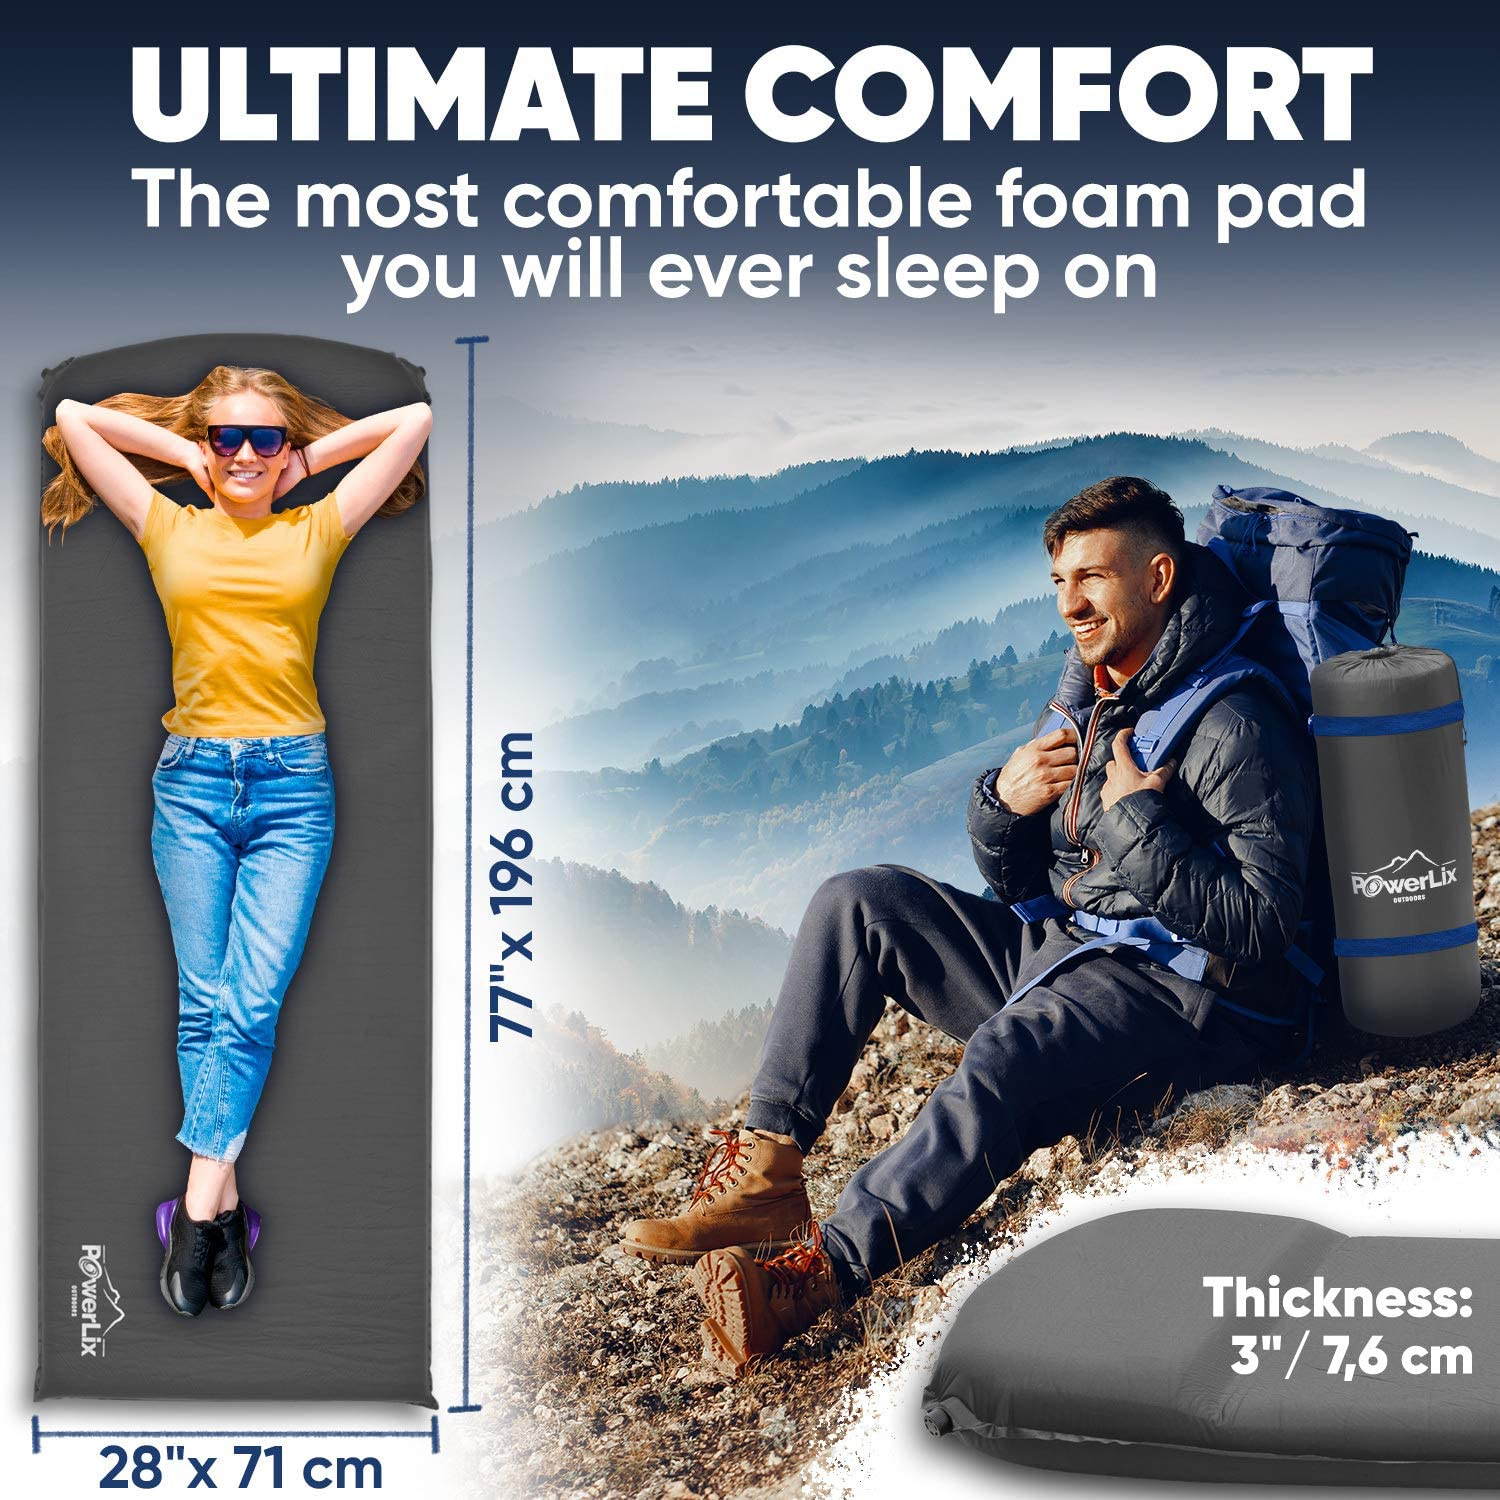 Self-Inflating Foam Pad Insulated 3inches Ultrathick Mattress for Camping Powerlix Sleeping Pad Ultralight Camping Mat for A Tent Hiking Backpacking Built in Pillow- Fits in A Carry Bag